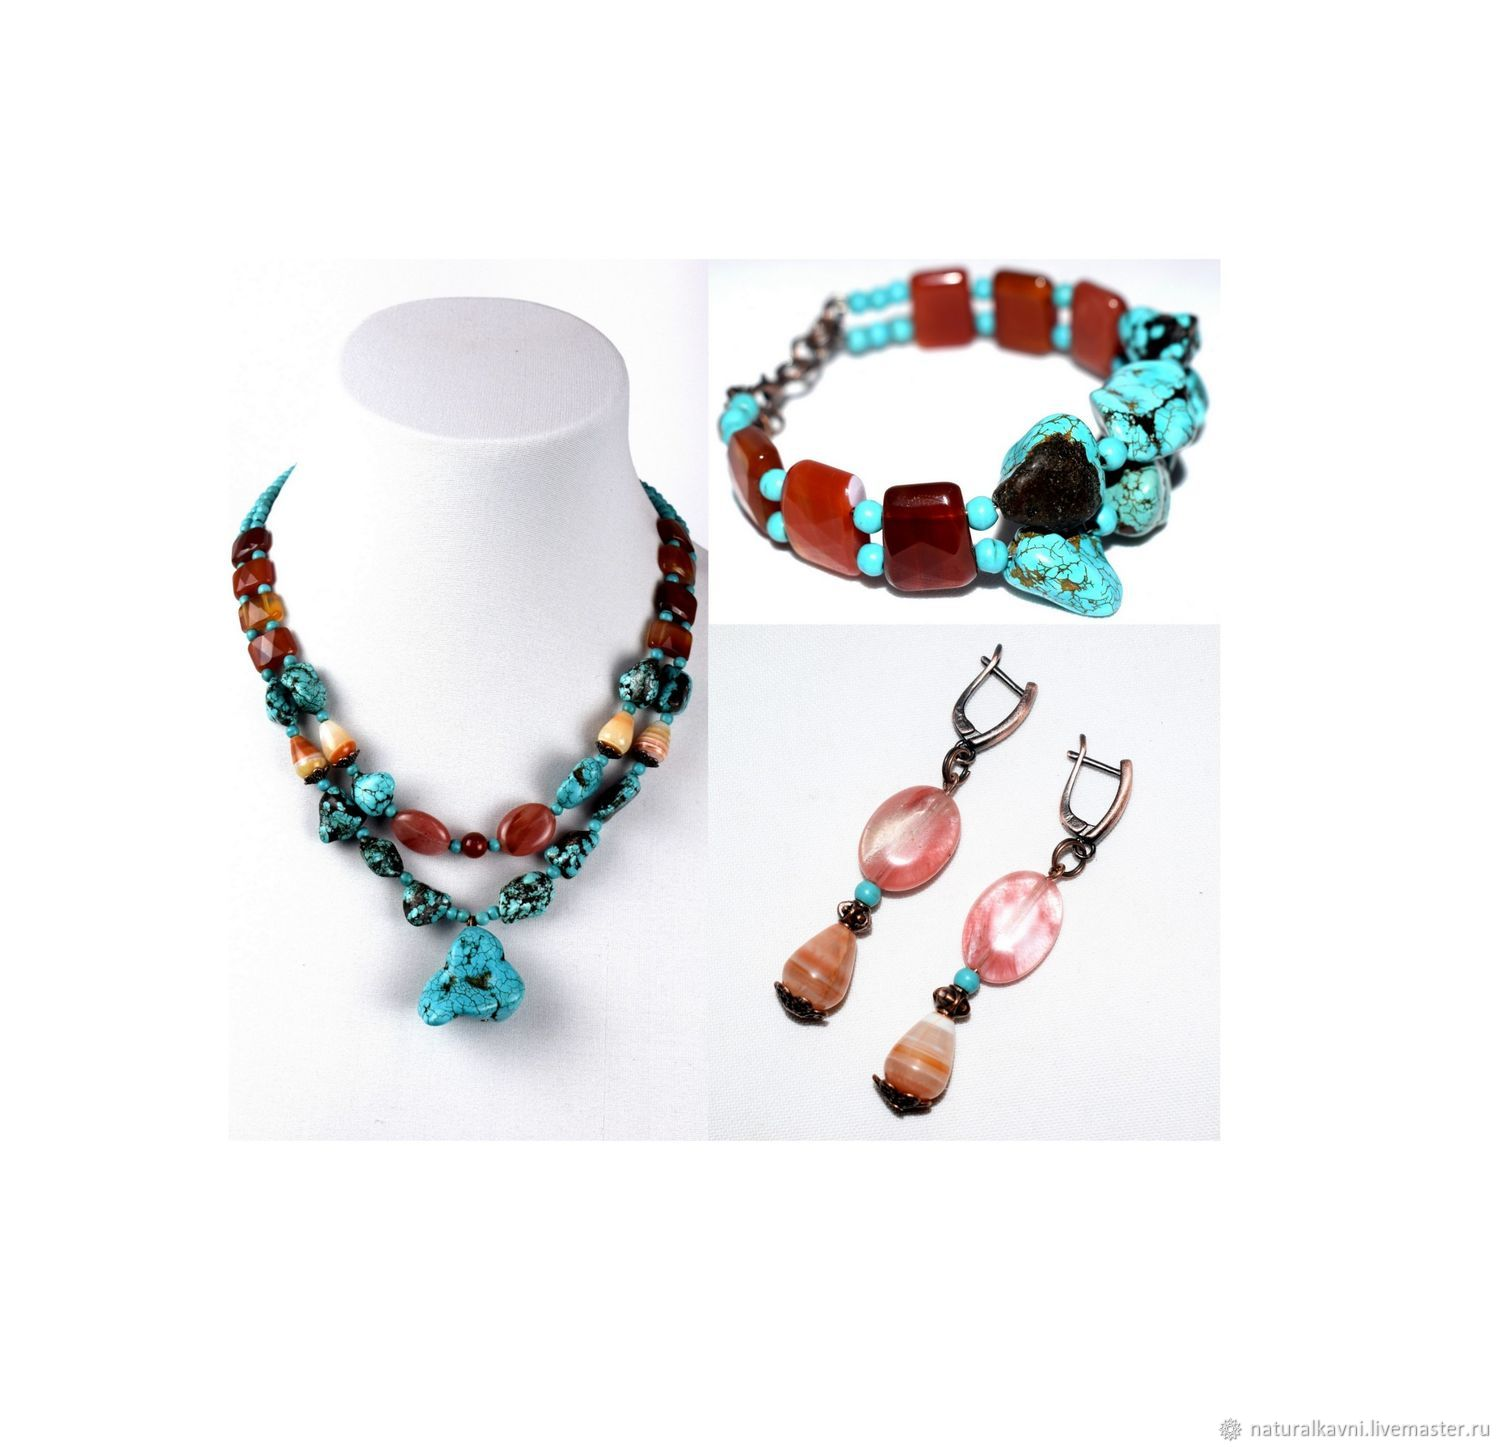 Set of earrings bracelet and necklace made of natural stones (m), Jewelry Sets, Moscow,  Фото №1